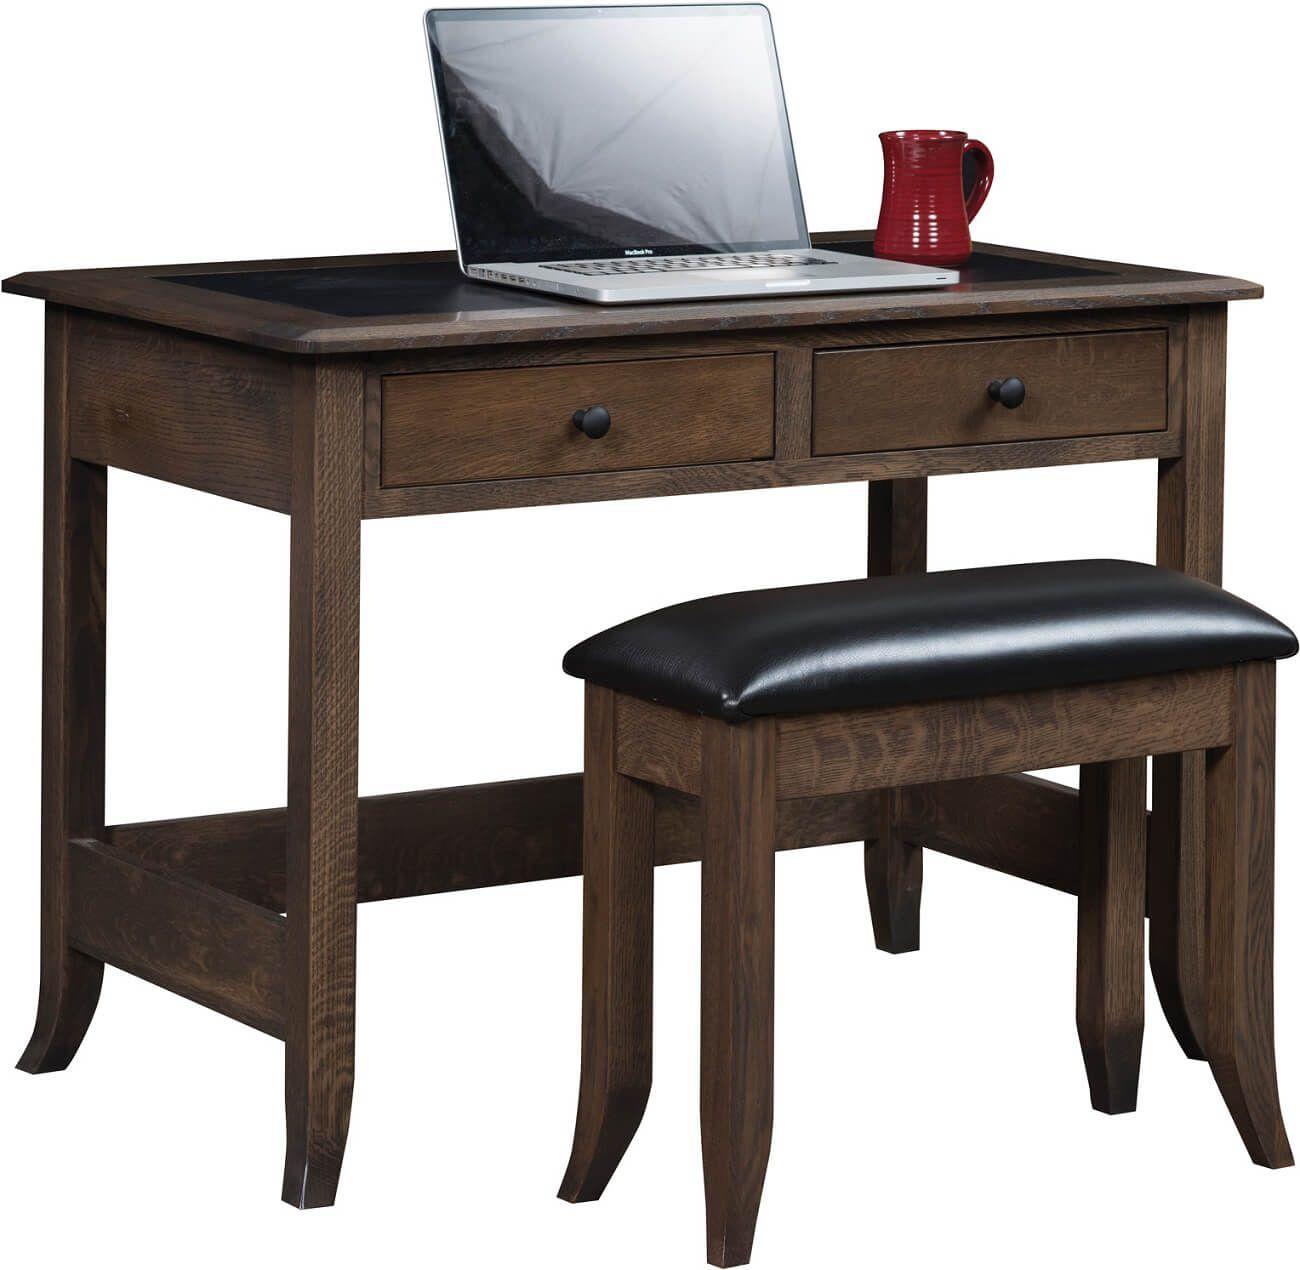 Ansley Writing Desk and Bench